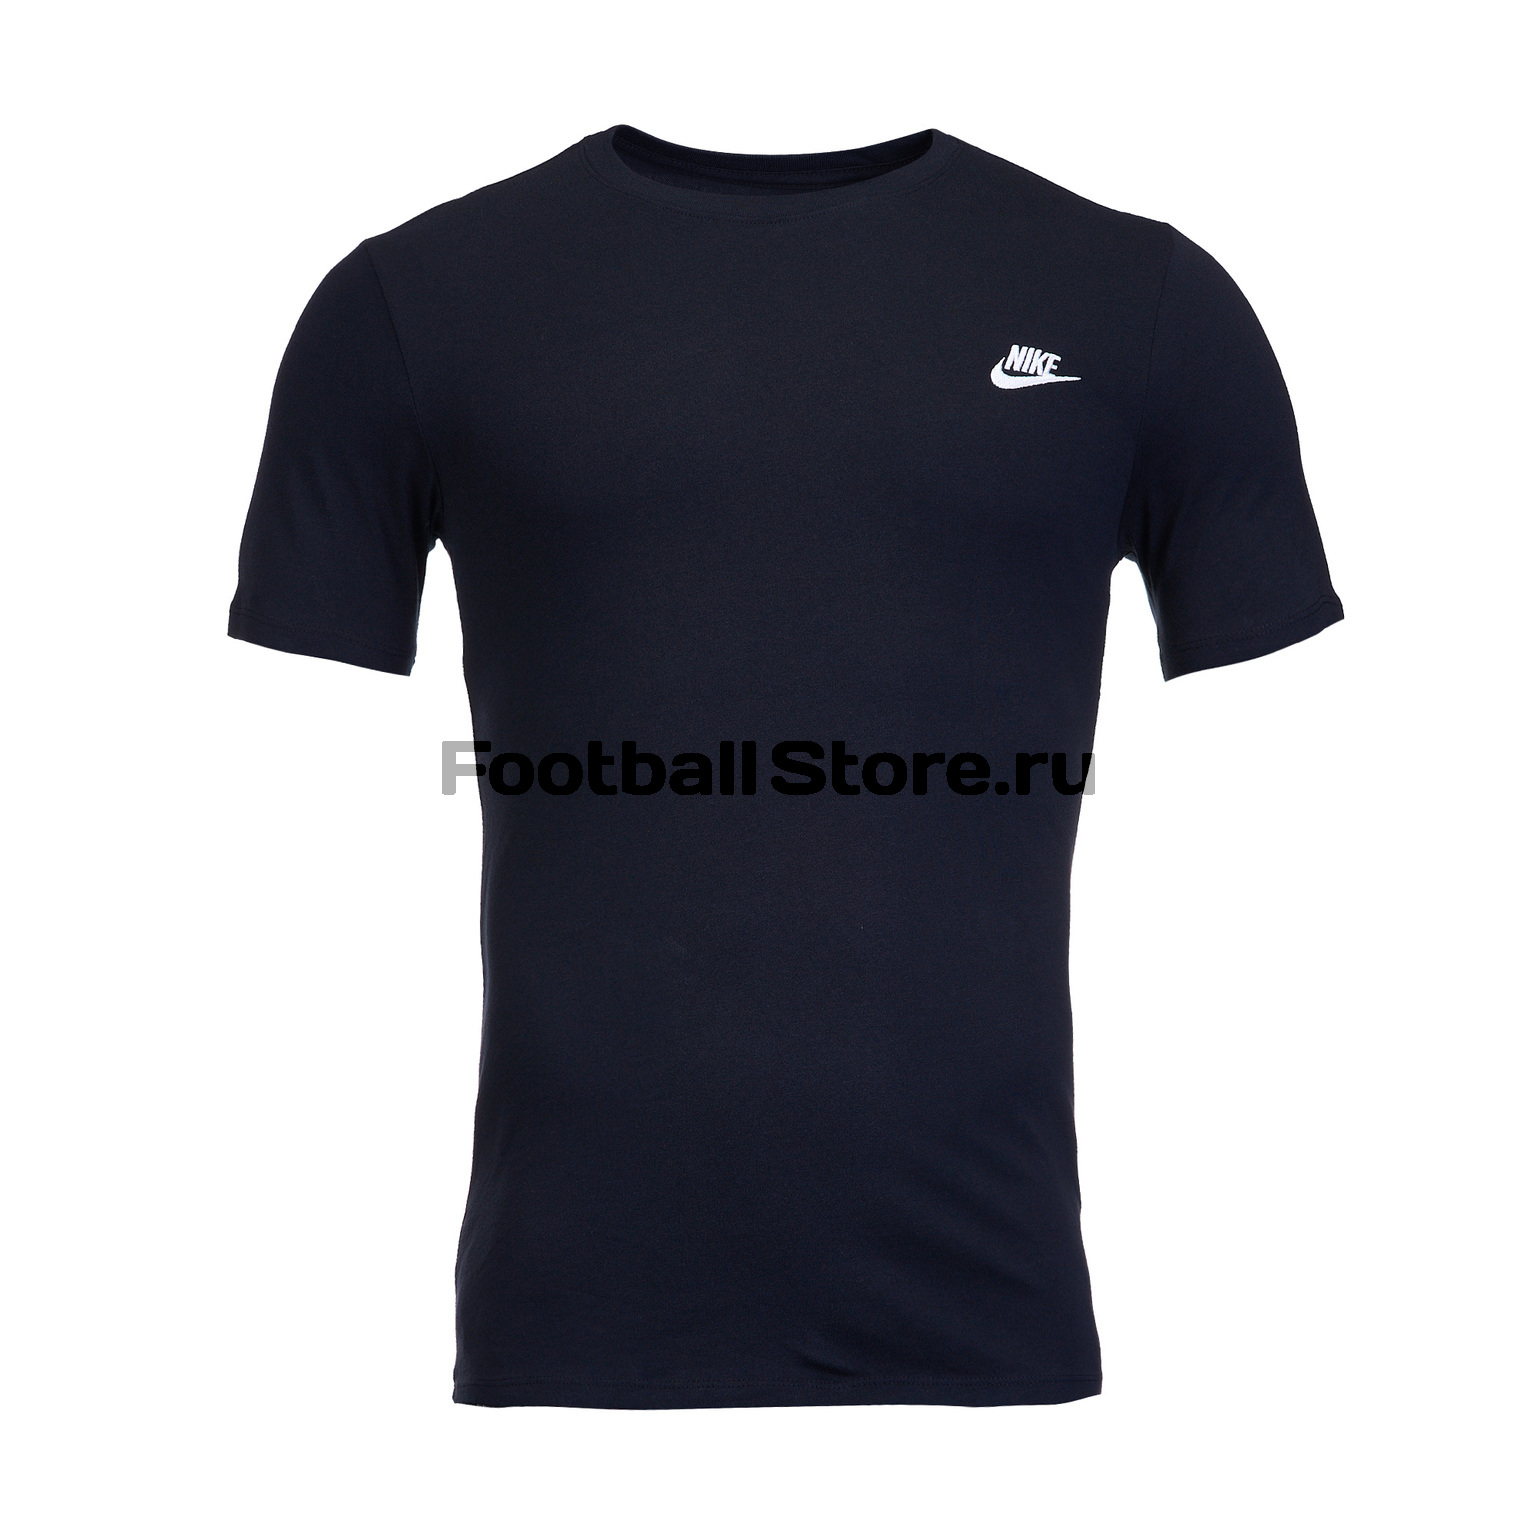 Футболка тренировочная Nike Tee Club Embrd Ftra 827021-011 turbo cartridge chra core 769708 769708 0003 769708 0002 769708 0001 14411 ec00b 14411 ec00c 14411 ec00e 14411ec00c 14411ec00e